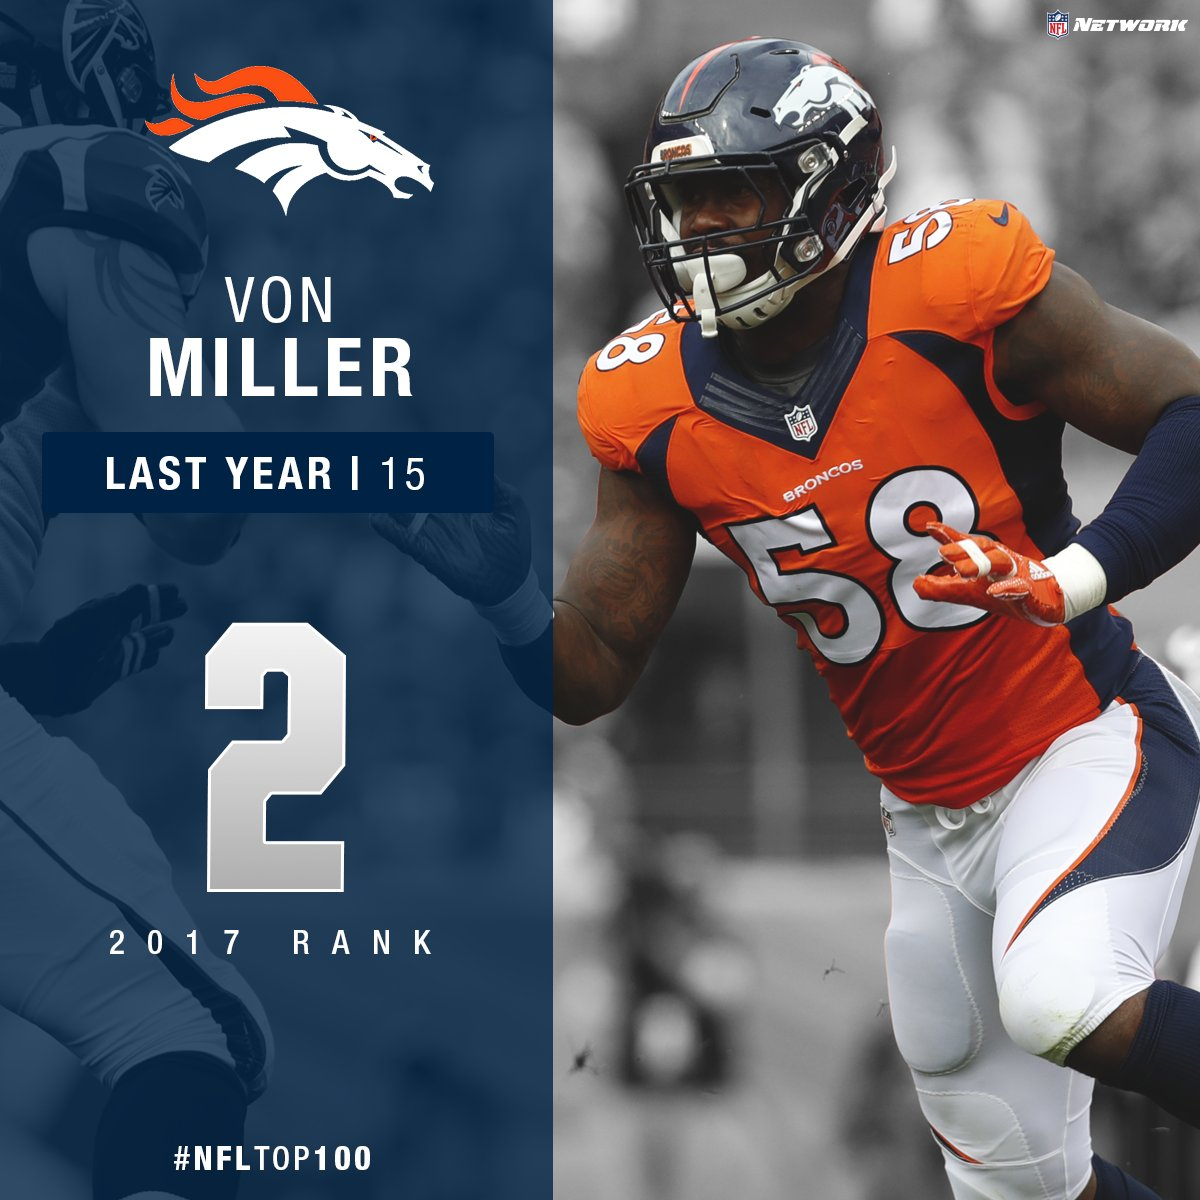 VONNNNNNNN!!!!!!  Five 10-sack seasons since entering NFL  Voted No. 2...